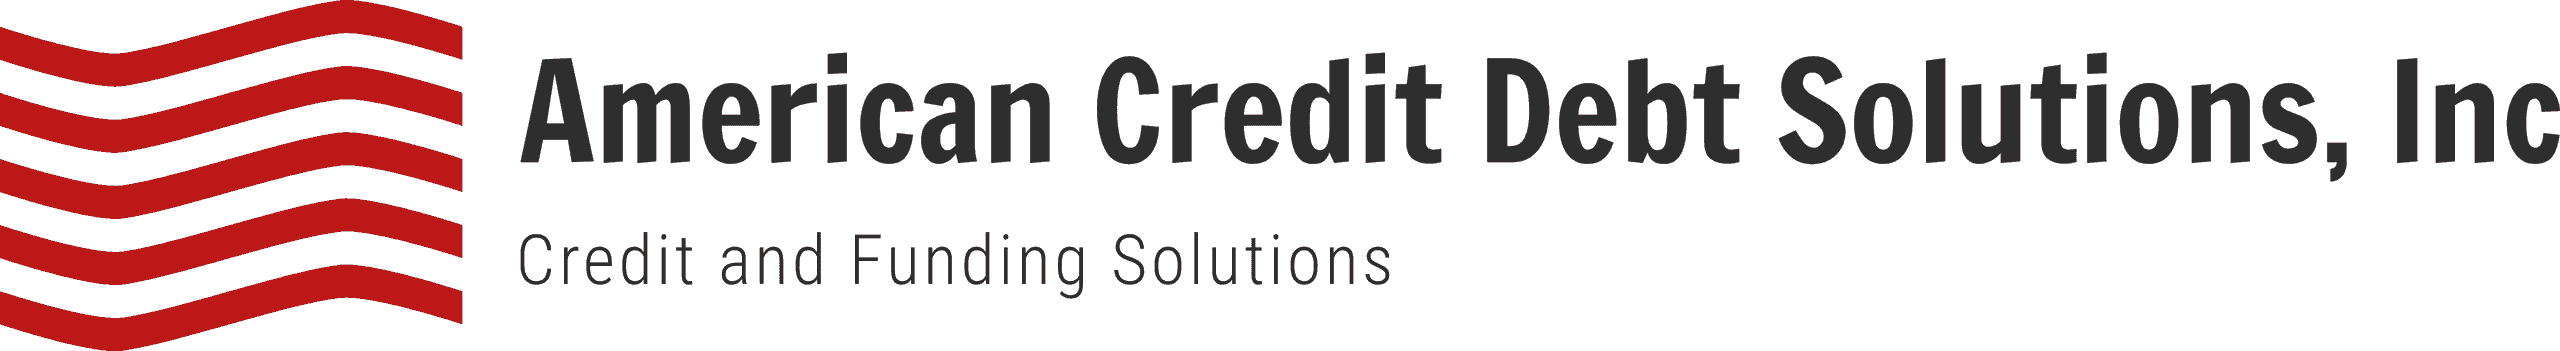 AMERICAN CREDIT DEBT SOLUTIONS, INC